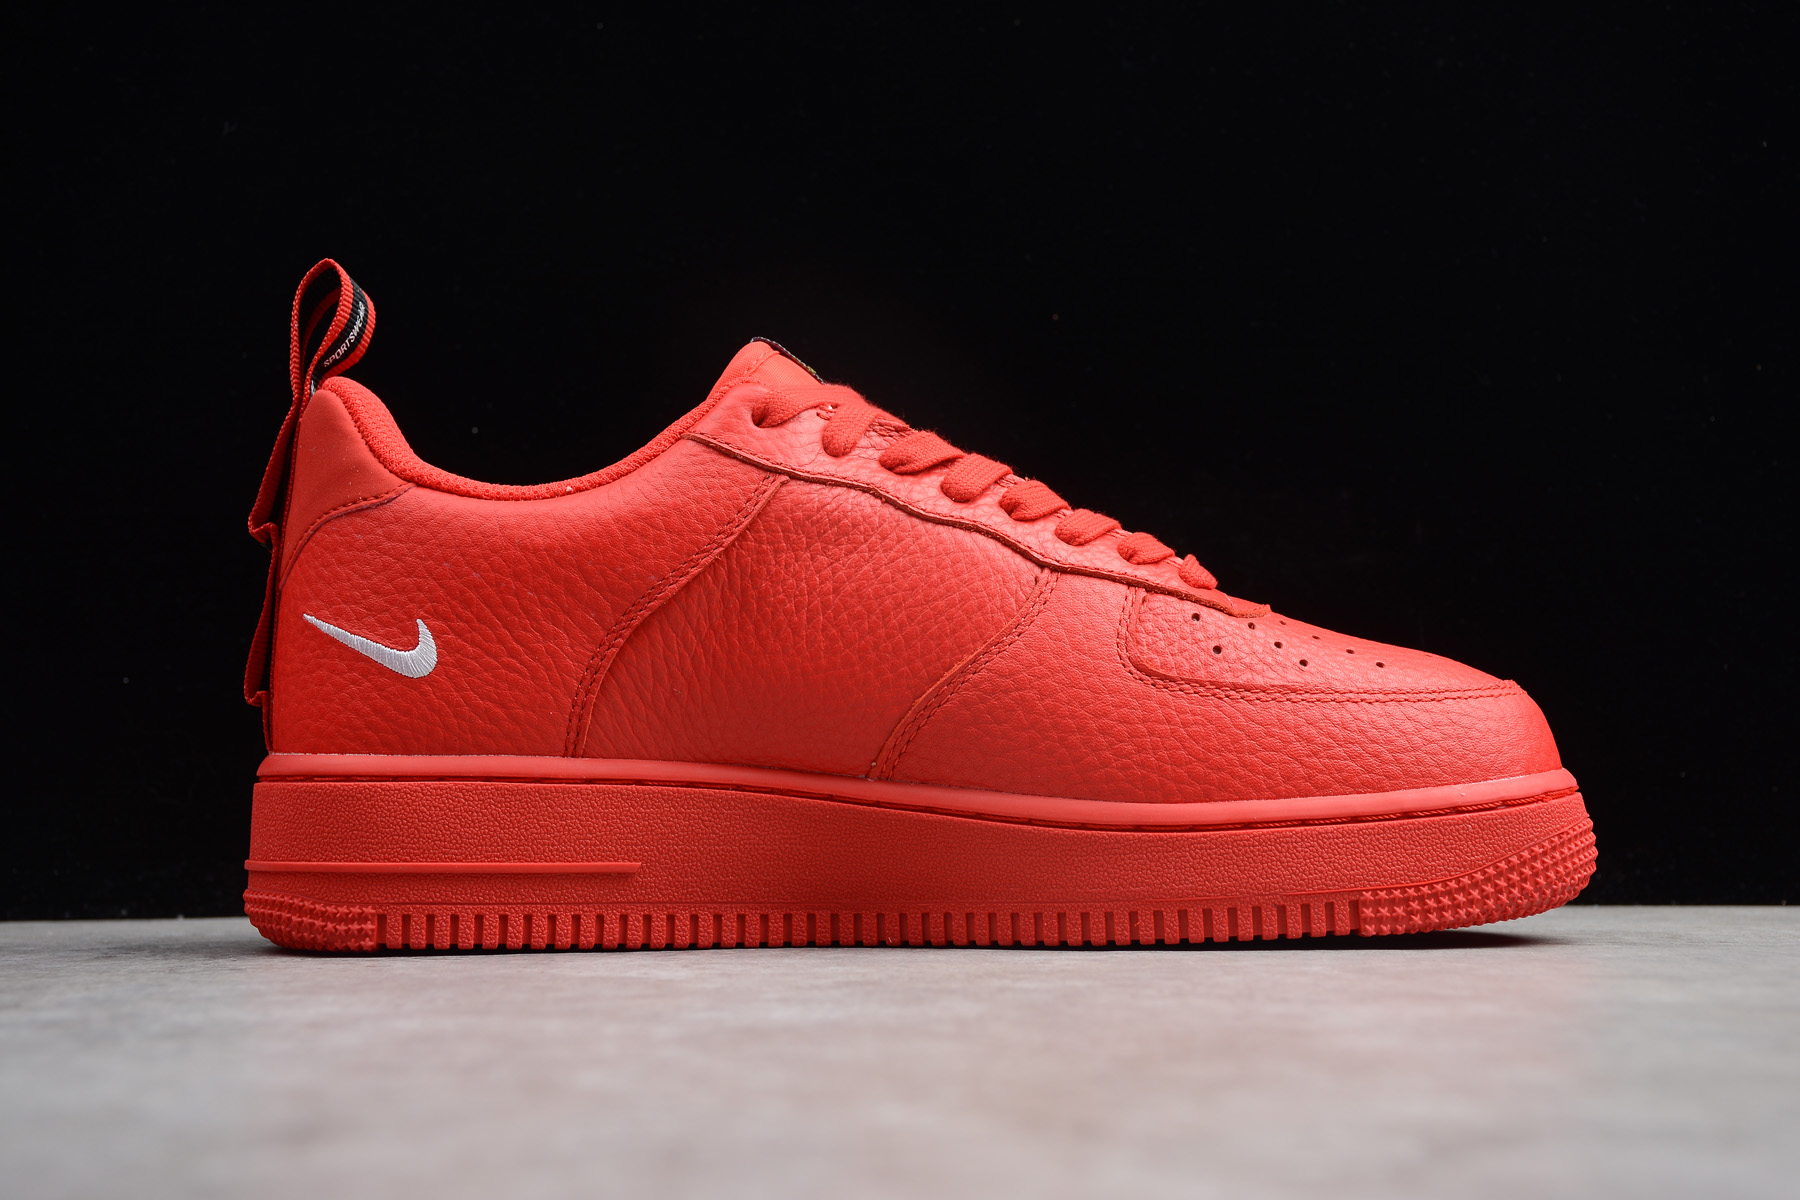 Nike Air Force 1 '07 LV8 Utility Red